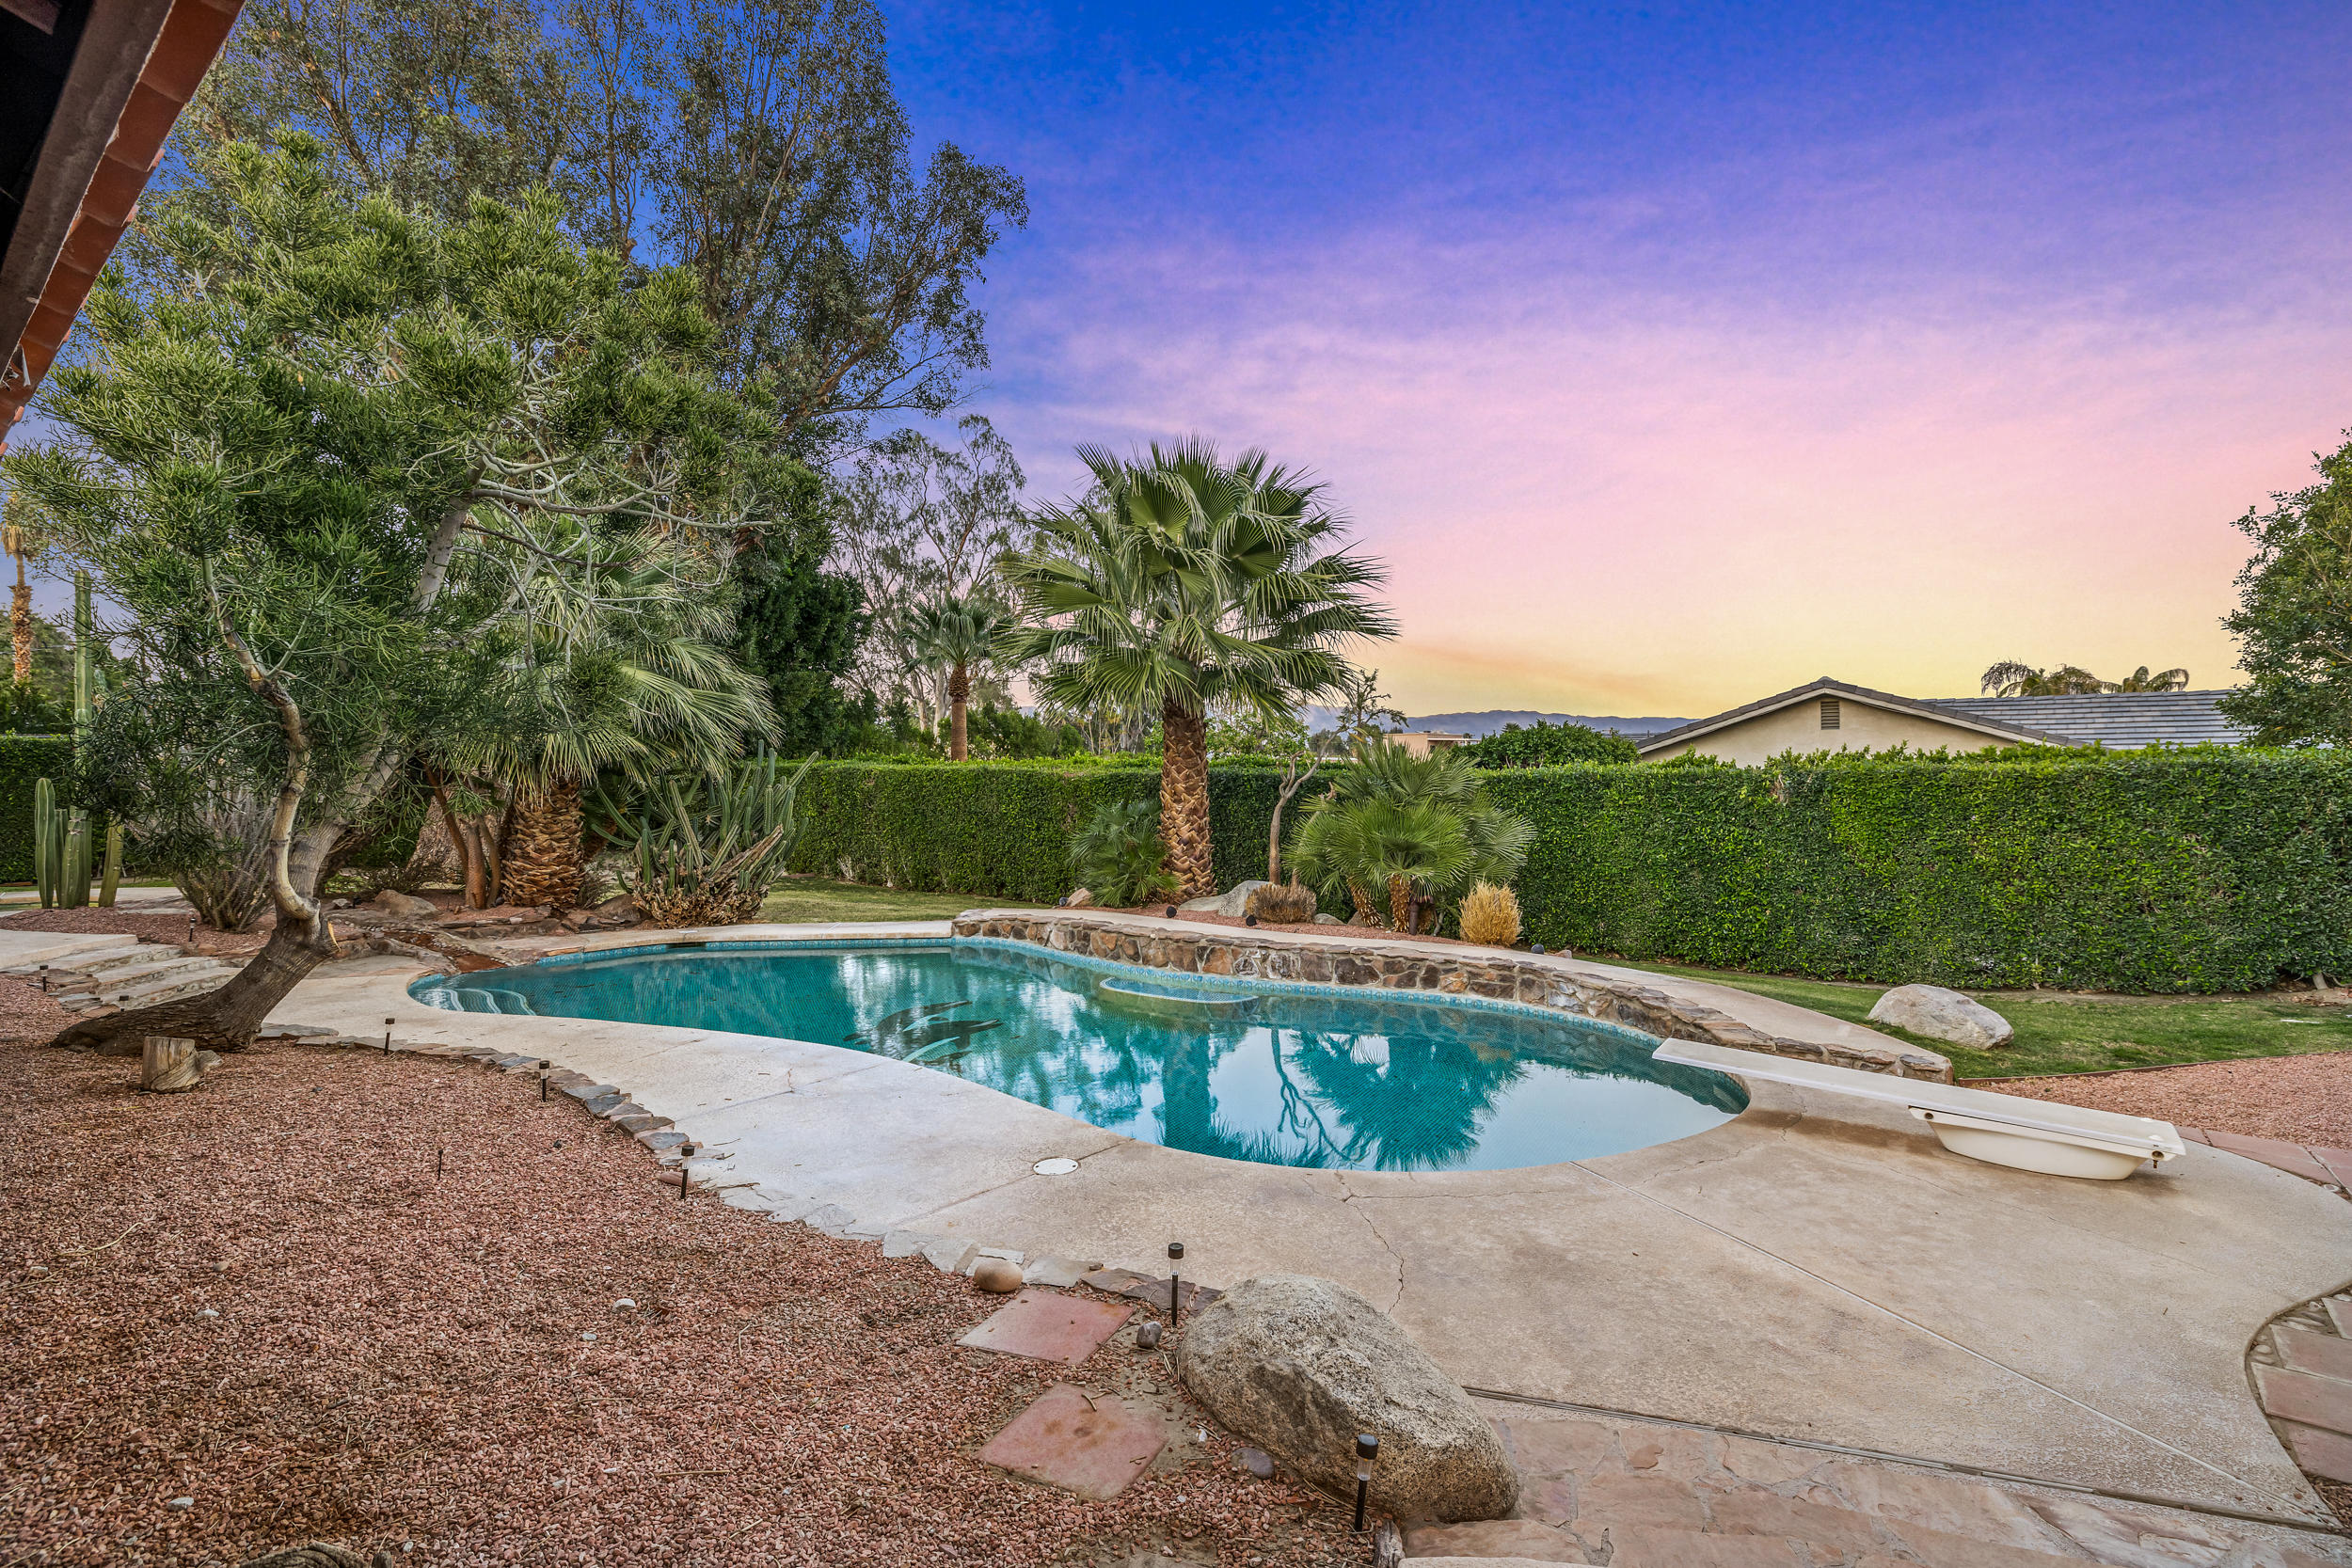 Unique opportunity to own this one of a kind property located in east Palm Desert. This home has 3,121 square feet of living space and sits on over half an acre corner lot w/an amazing private detached 30'x 50' RV garage with a two post hydraulic lift. In addition to the RV garage, there is a traditional two car garage both are equipped with evaporative coolers which have been replaced in the past 2 and 3 years. There is also owned solar and windows, doors and sliders have been replaced. This is your opportunity to make this three bedroom, plus bonus room, which can be used as a fourth bedroom or office, 3 bathrooms, living room, formal dining room and bar area, fireplace, kitchen with breakfast room, into your desert oasis. This home has 18' x 18' tile throughout with exception of the master bedroom, plus plank tile in the living room. You will love the backyard with a beautiful pool, spa and creek that runs from the spa into the pool, there is an enclosed covered patio, mature landscaping and some sweet mountain views. The circular driveway is great for additional vehicles, plus not to mention the additional parking area behind the gated fence. Lots and lots of room for your car collection, boats, SUV's, sport utility vehicles, motorcycles or motor home. The possibilities are endless. There are no HOA fees, Mello Roos or land lease here. Contact the City of Palm Desert for Onsite Owner STR opportunities.